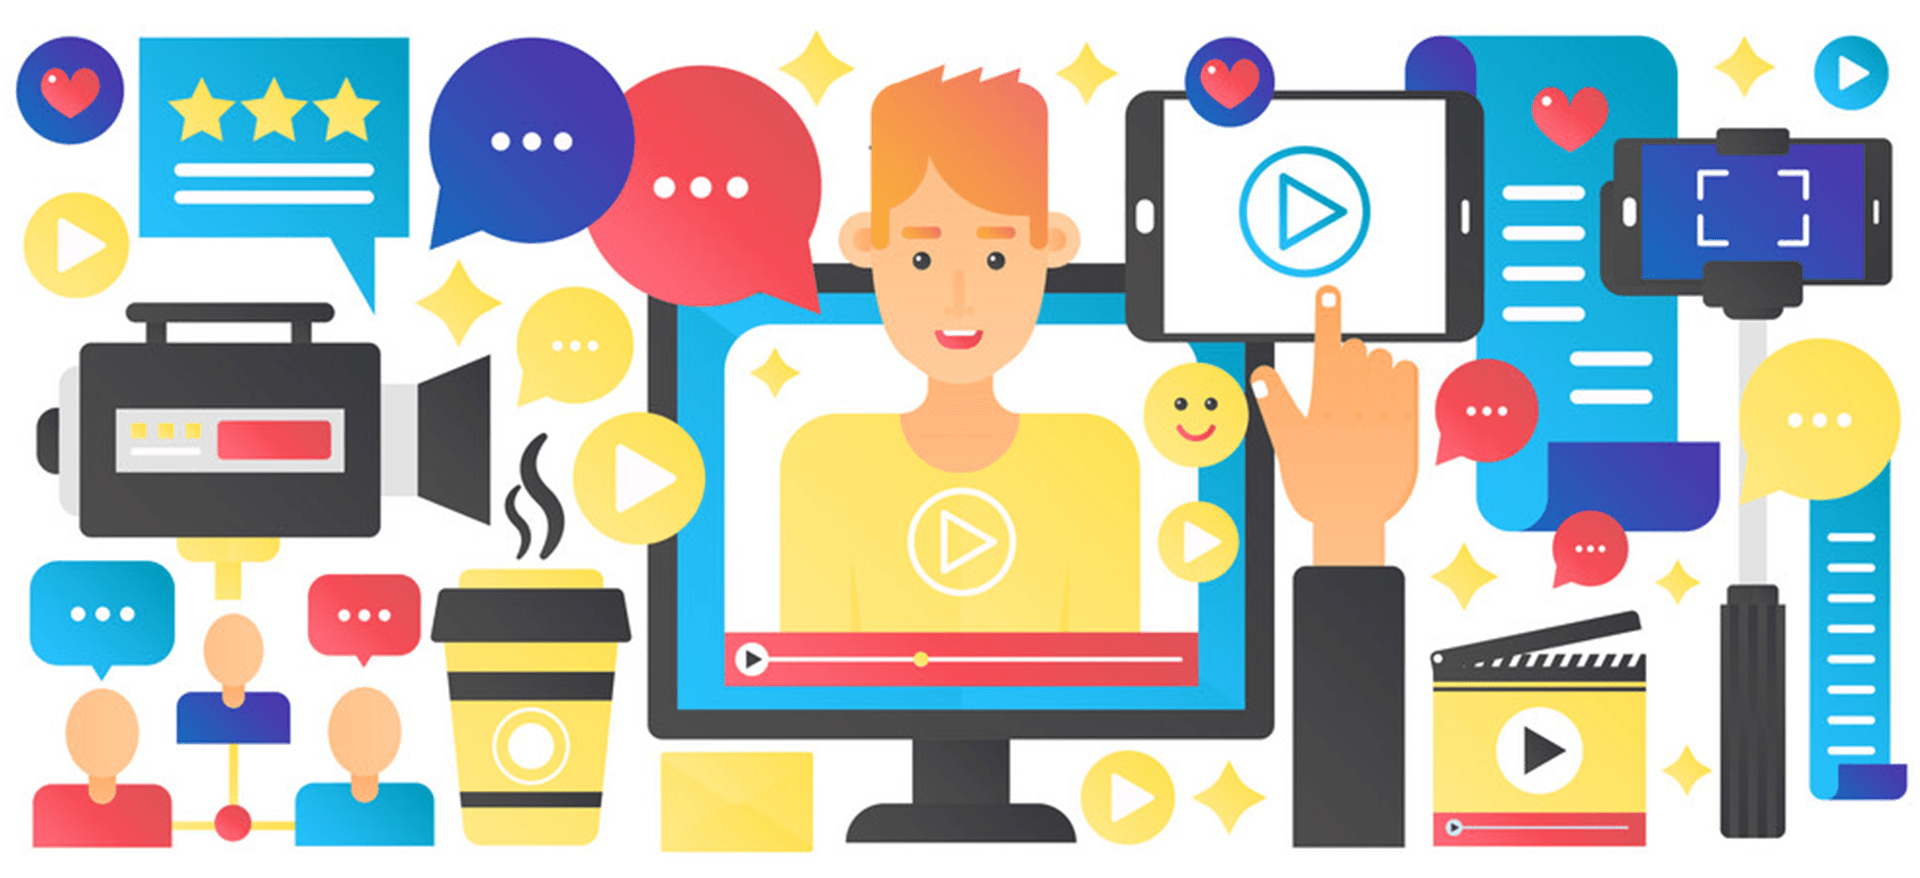 Video - an article about promotion through video